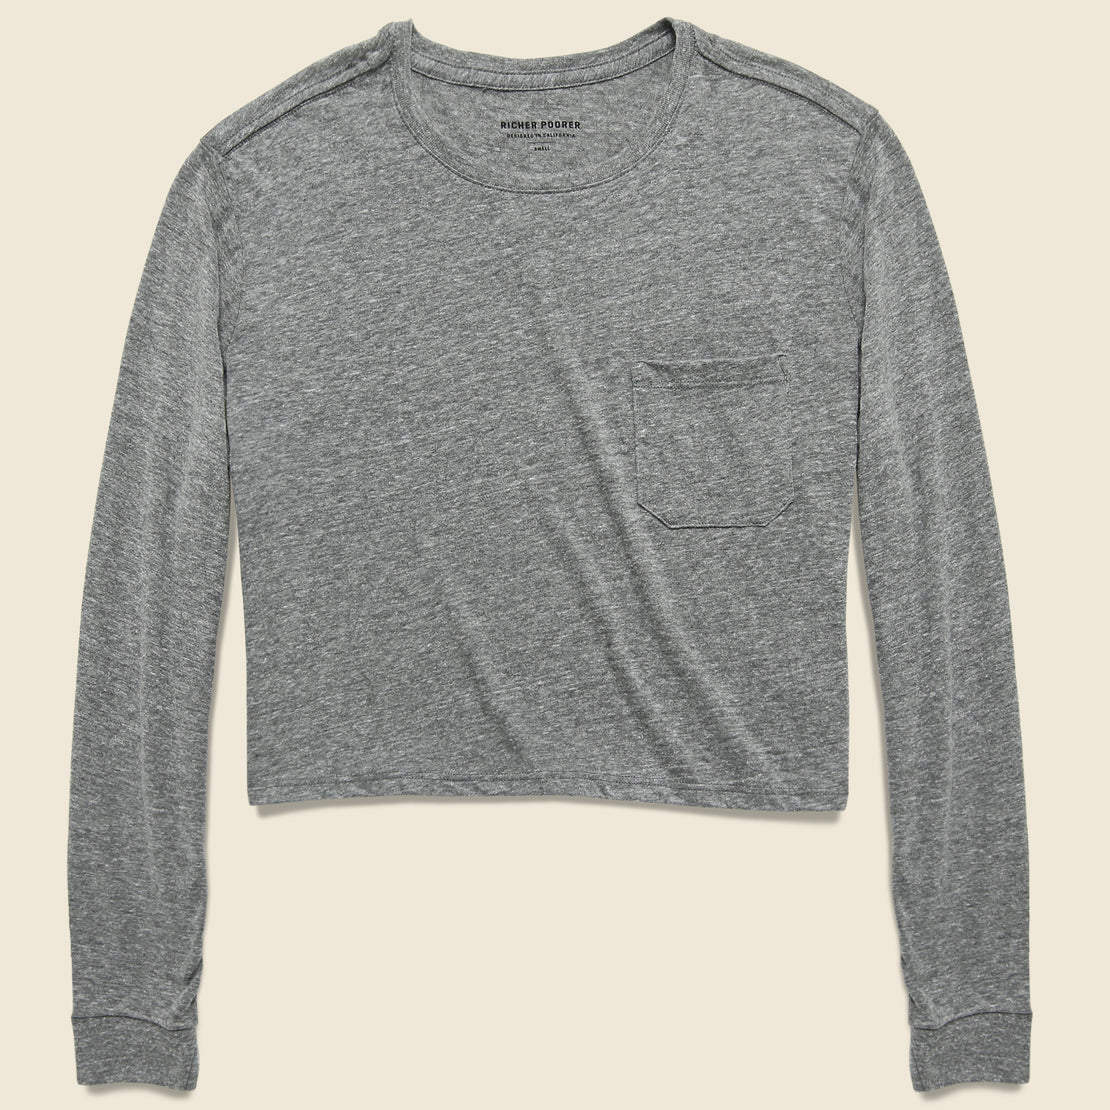 Richer Poorer Long Sleeve Cropped Tee - Heather Grey